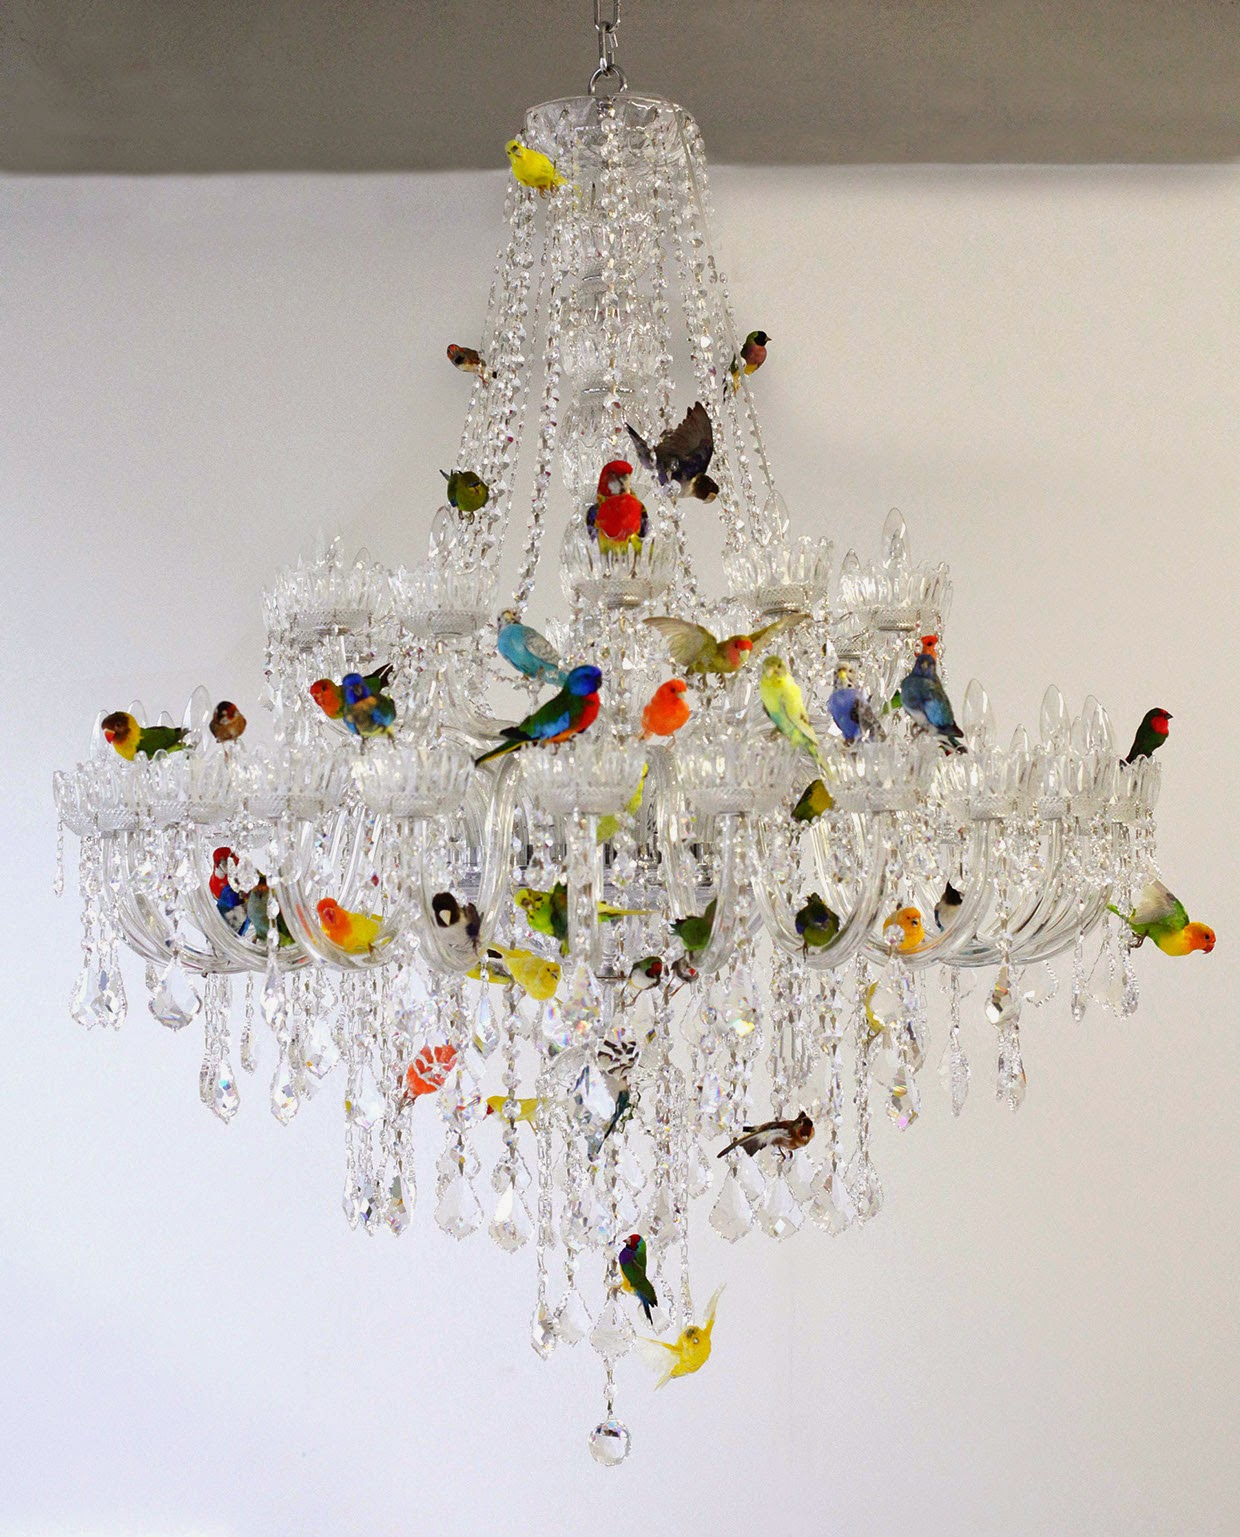 Total inspiration bird chandelier by sebastian errazuriz bird chandelier by sebastian errazuriz arubaitofo Gallery